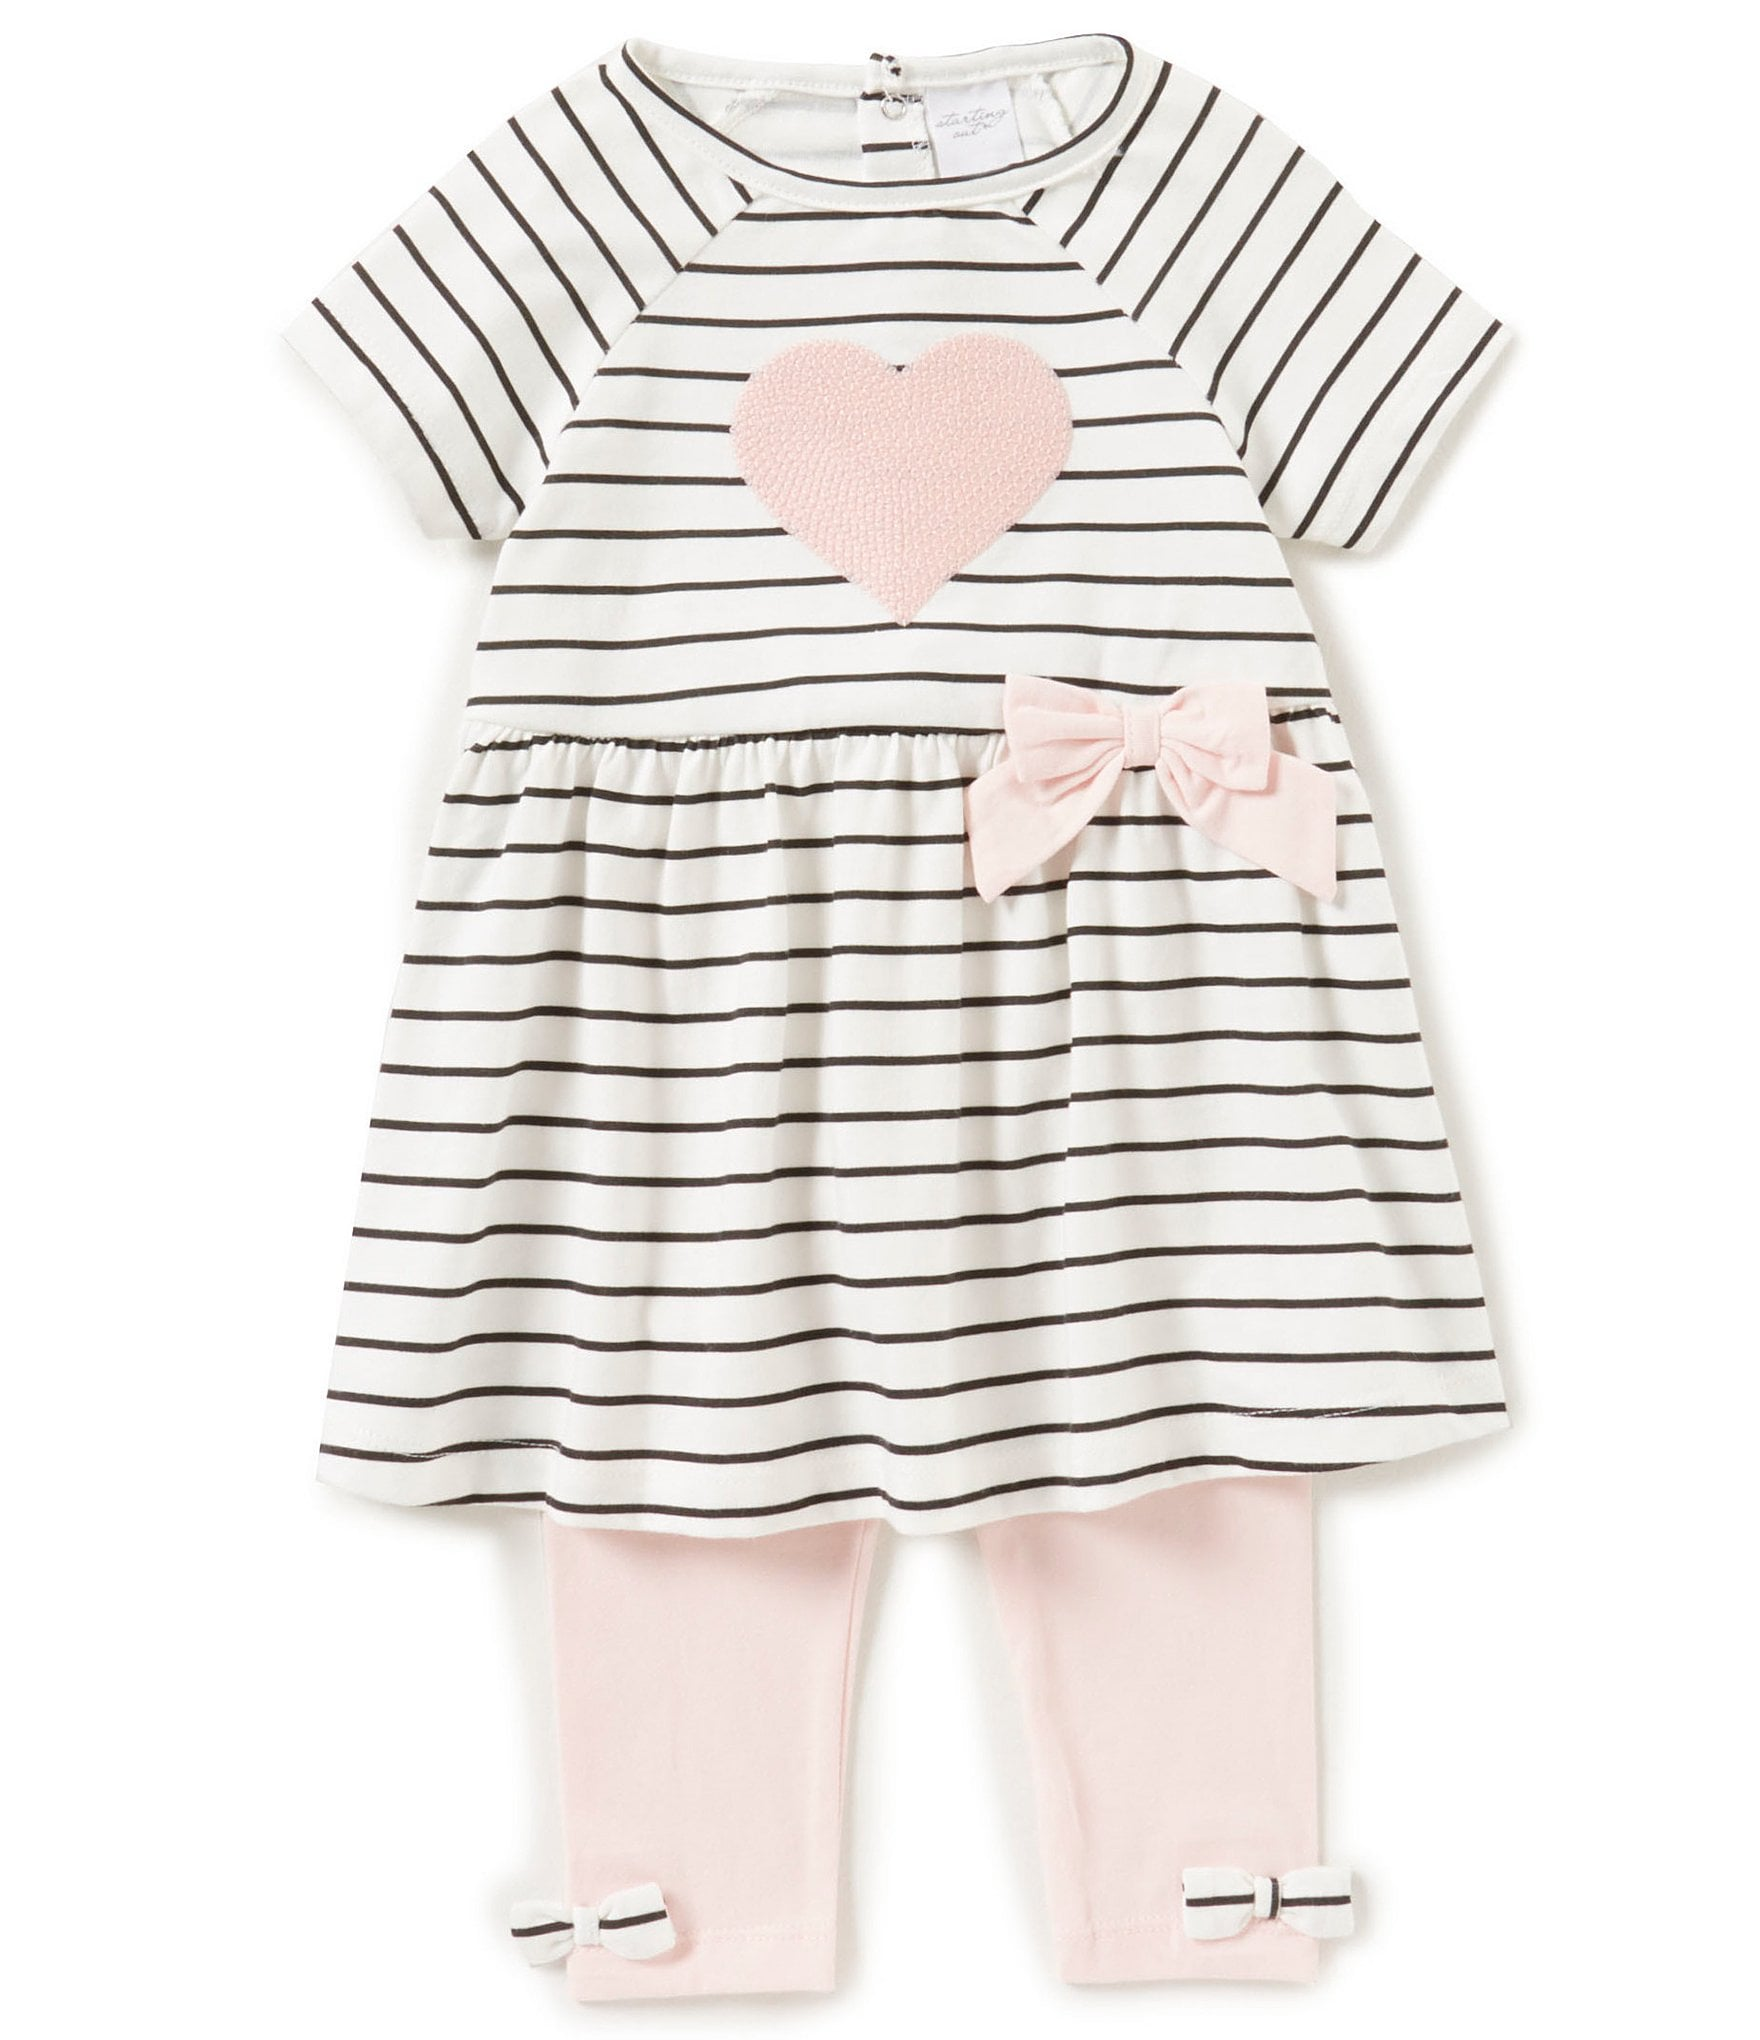 Blue Baby Girl Outfits & Clothing Sets